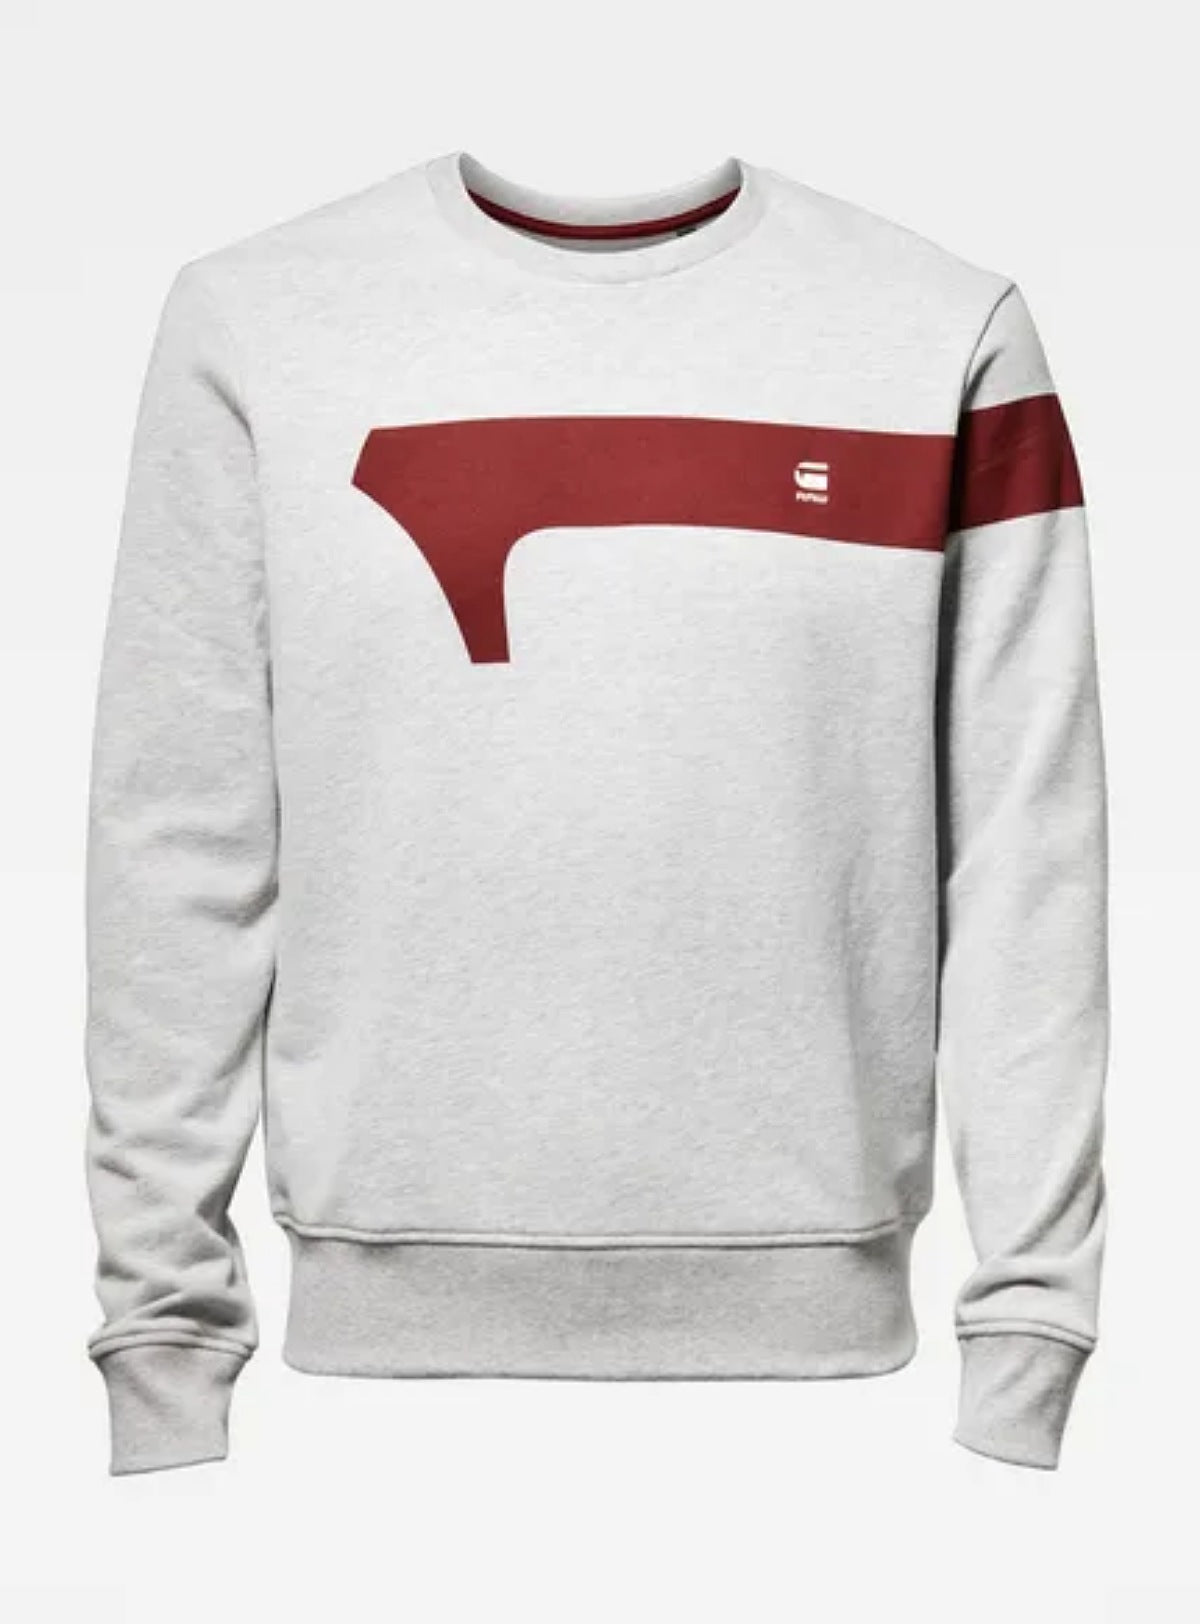 G-Star - Graphic 13 Sweater - Grey And Red - D15610